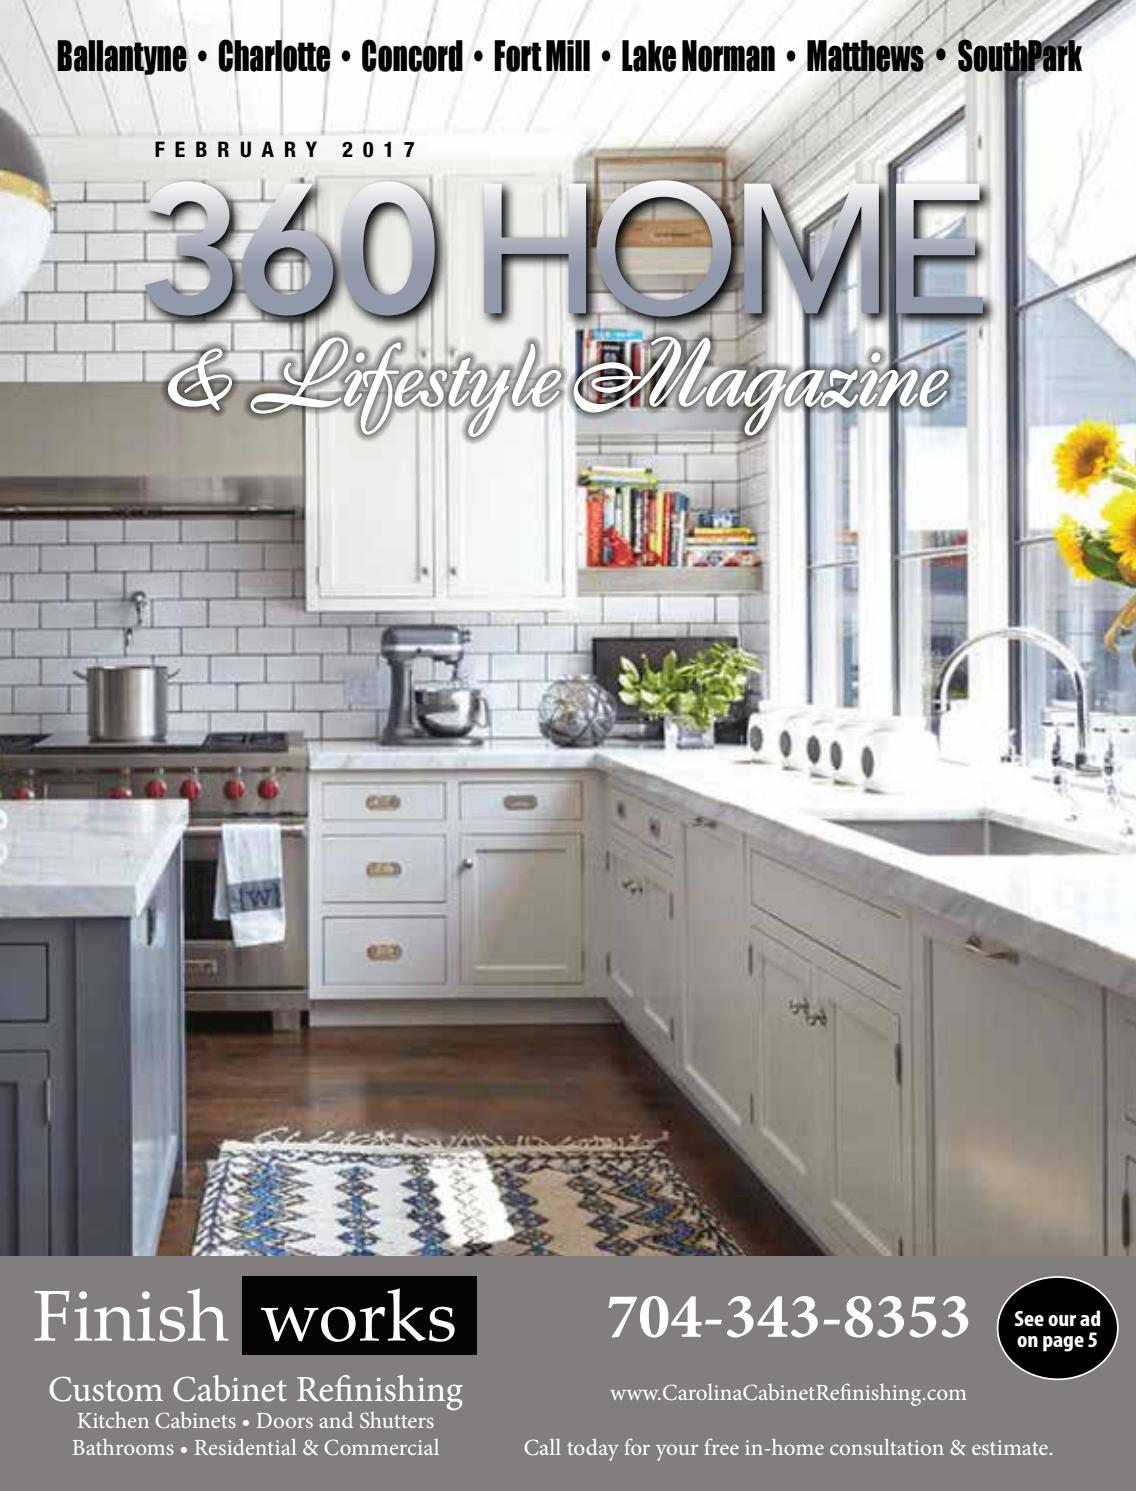 360 Home Magazine, Charlotte. February 2017 by Warren Stone - issuu